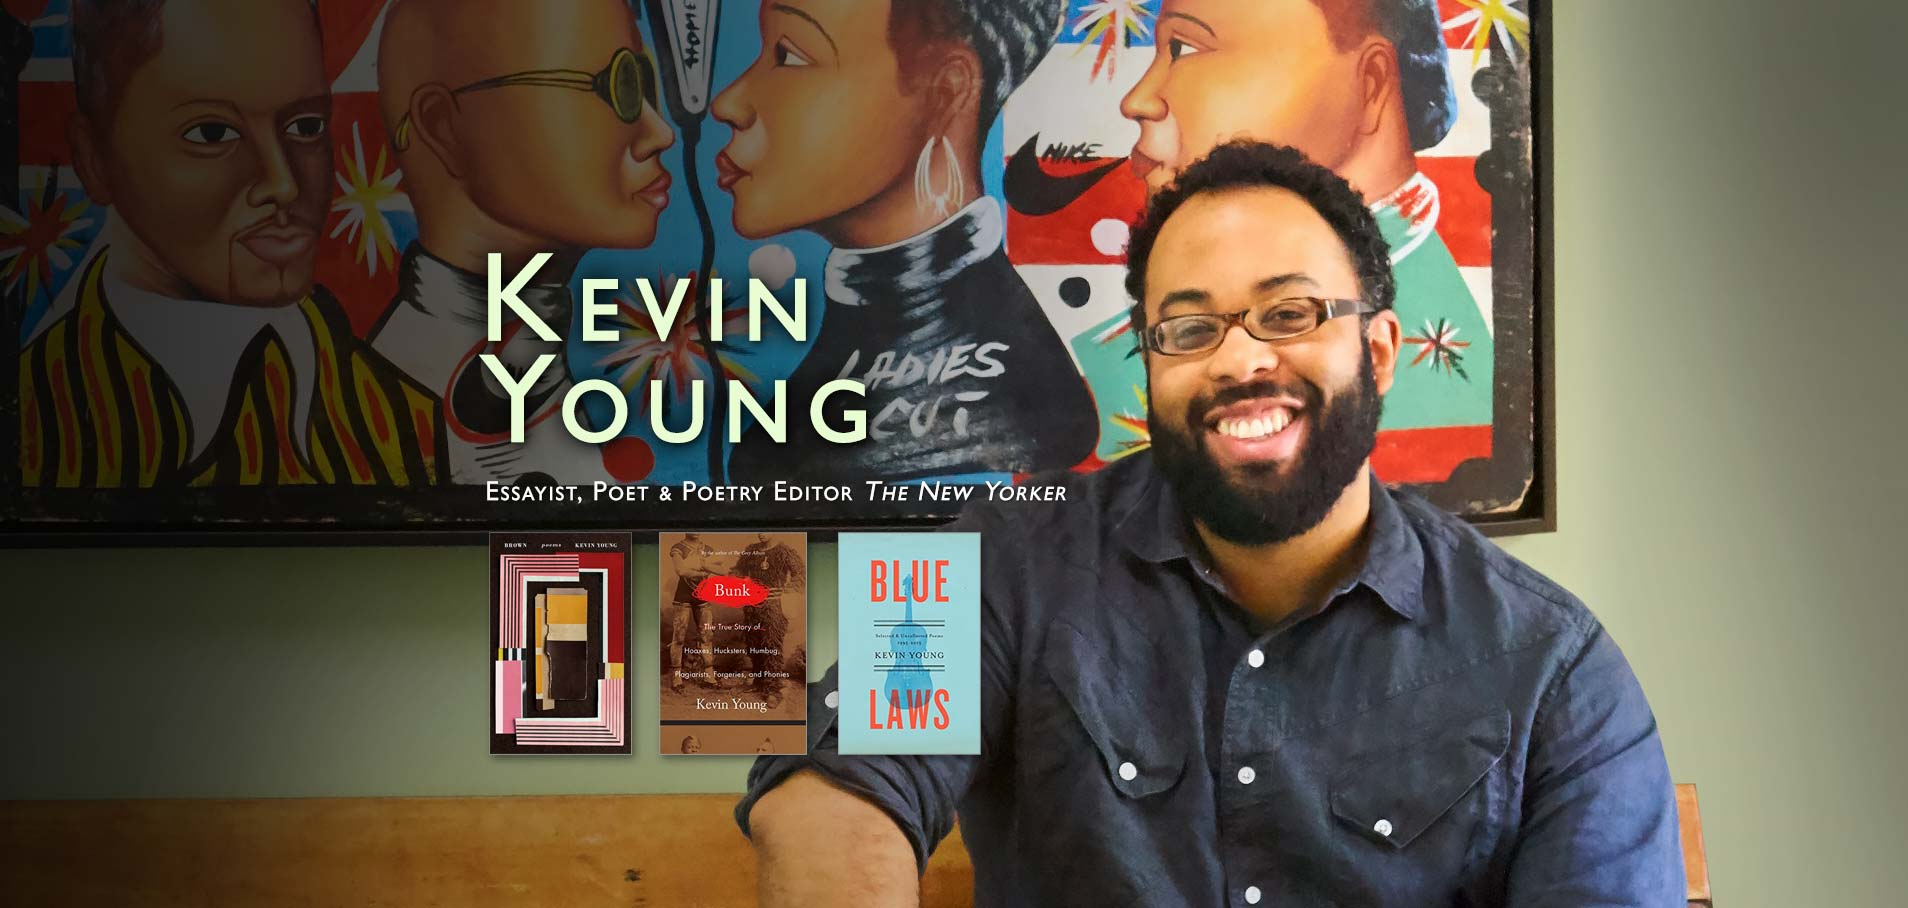 Kevin Young image